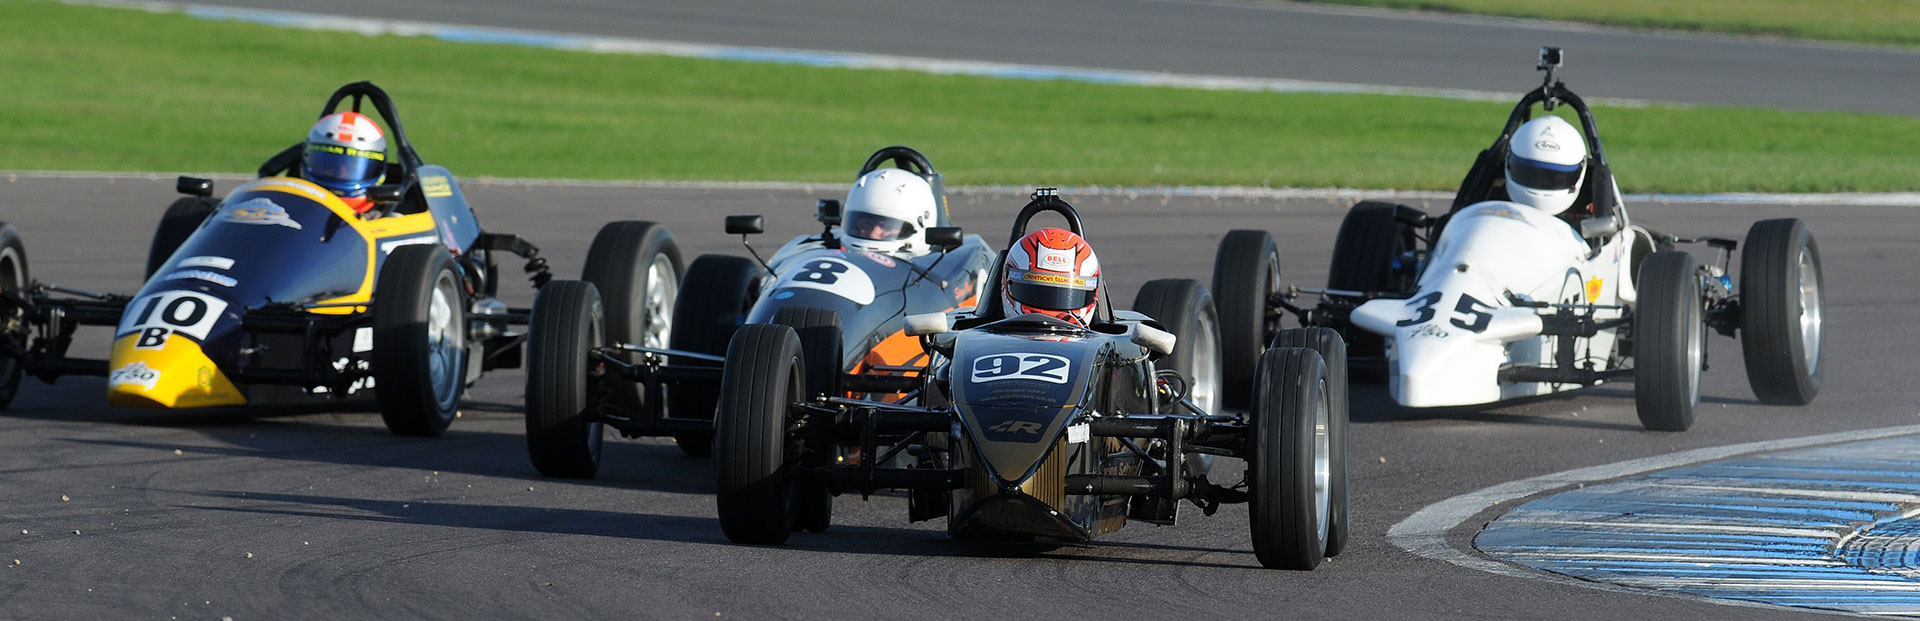 Racing on the UK's premier circuits